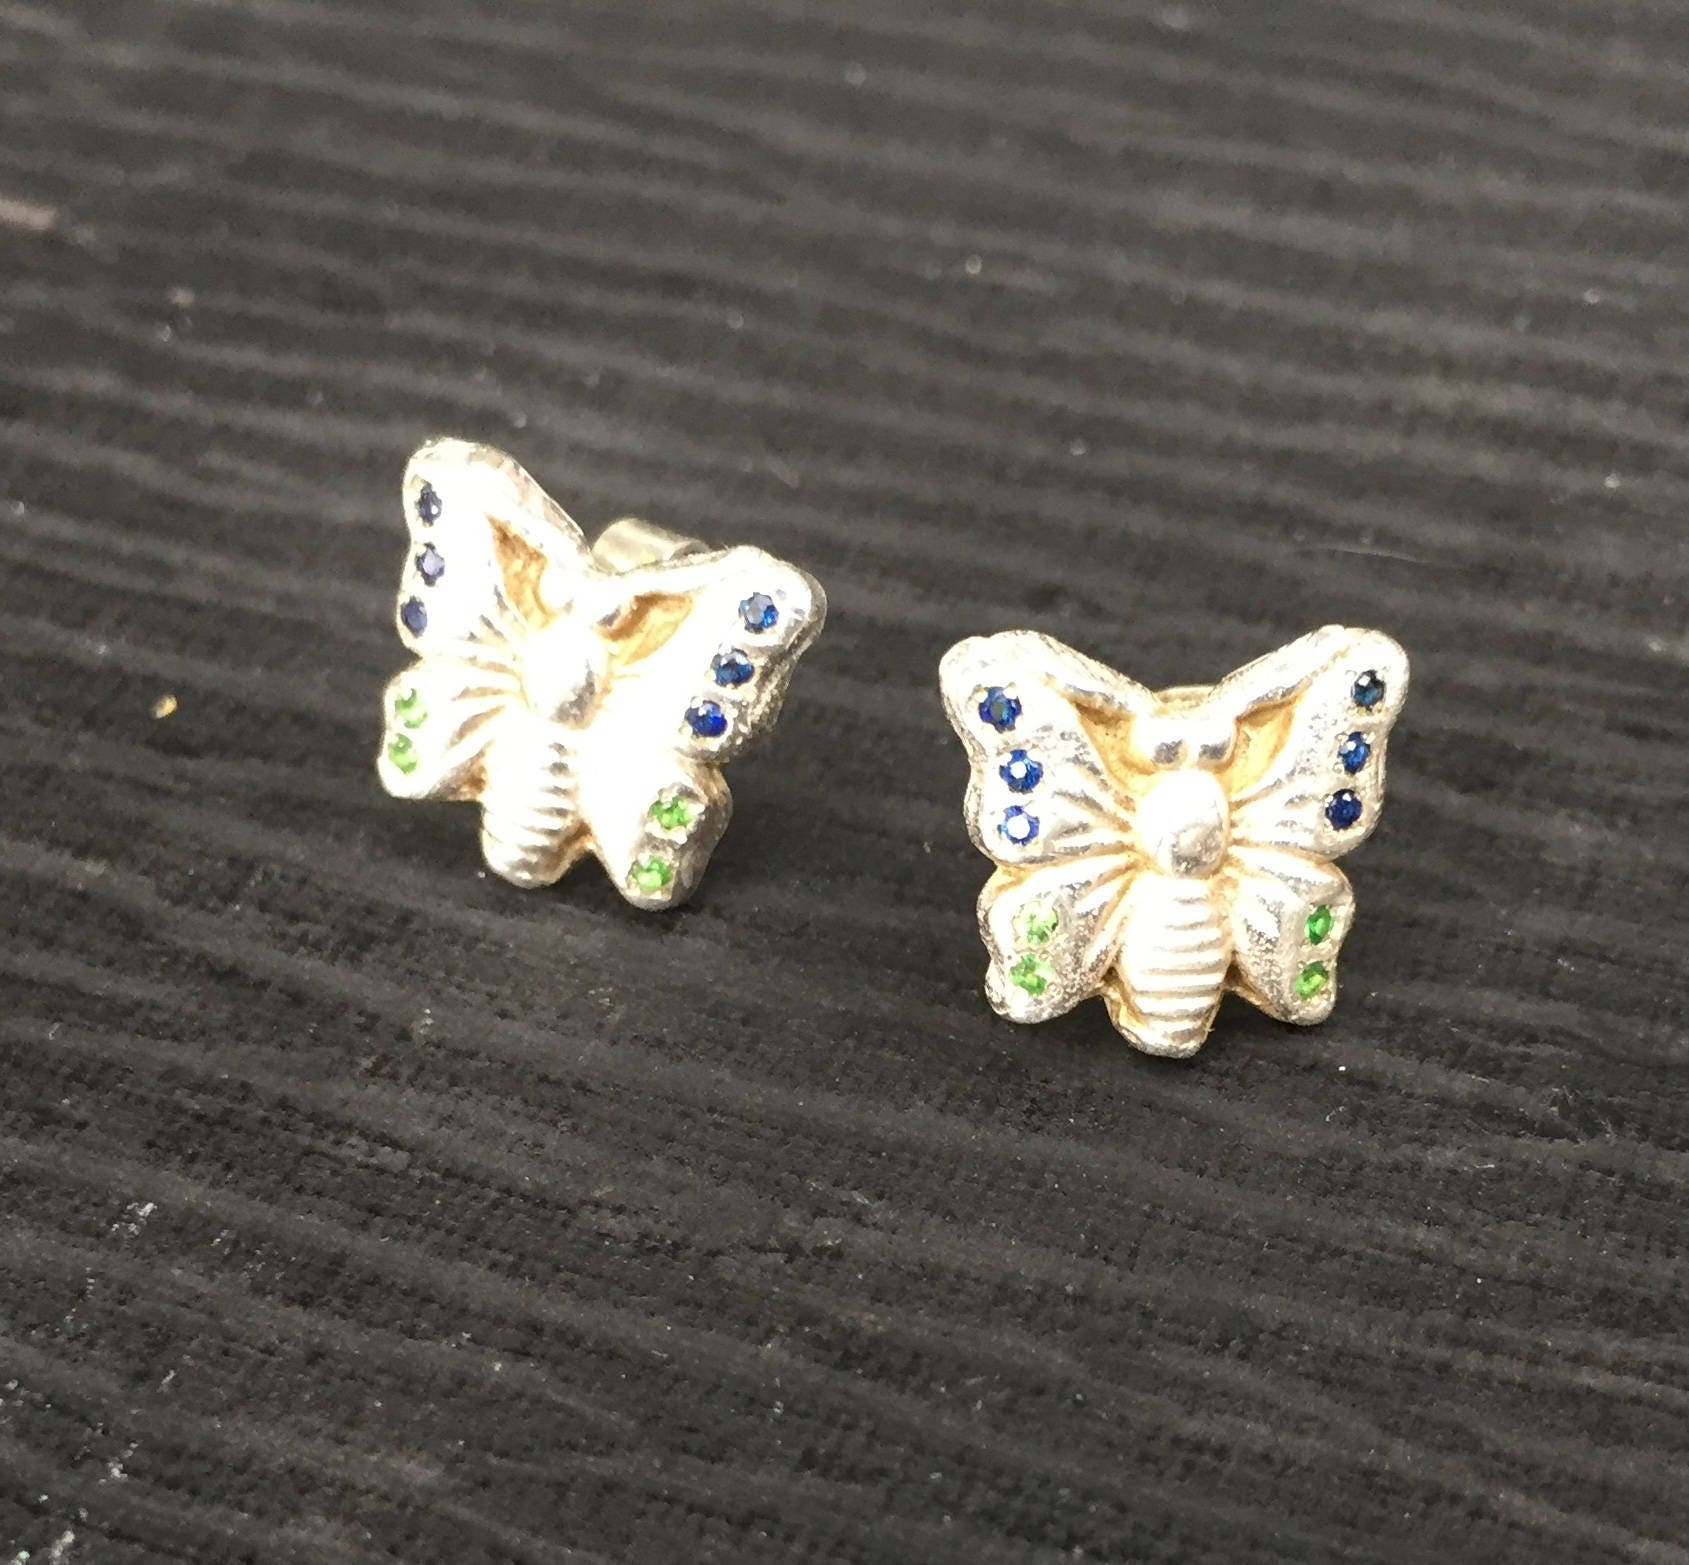 main silver earrings com at rsp stud johnlewis zirconia jenny buyjools butterfly jools brown pdp cubic online by